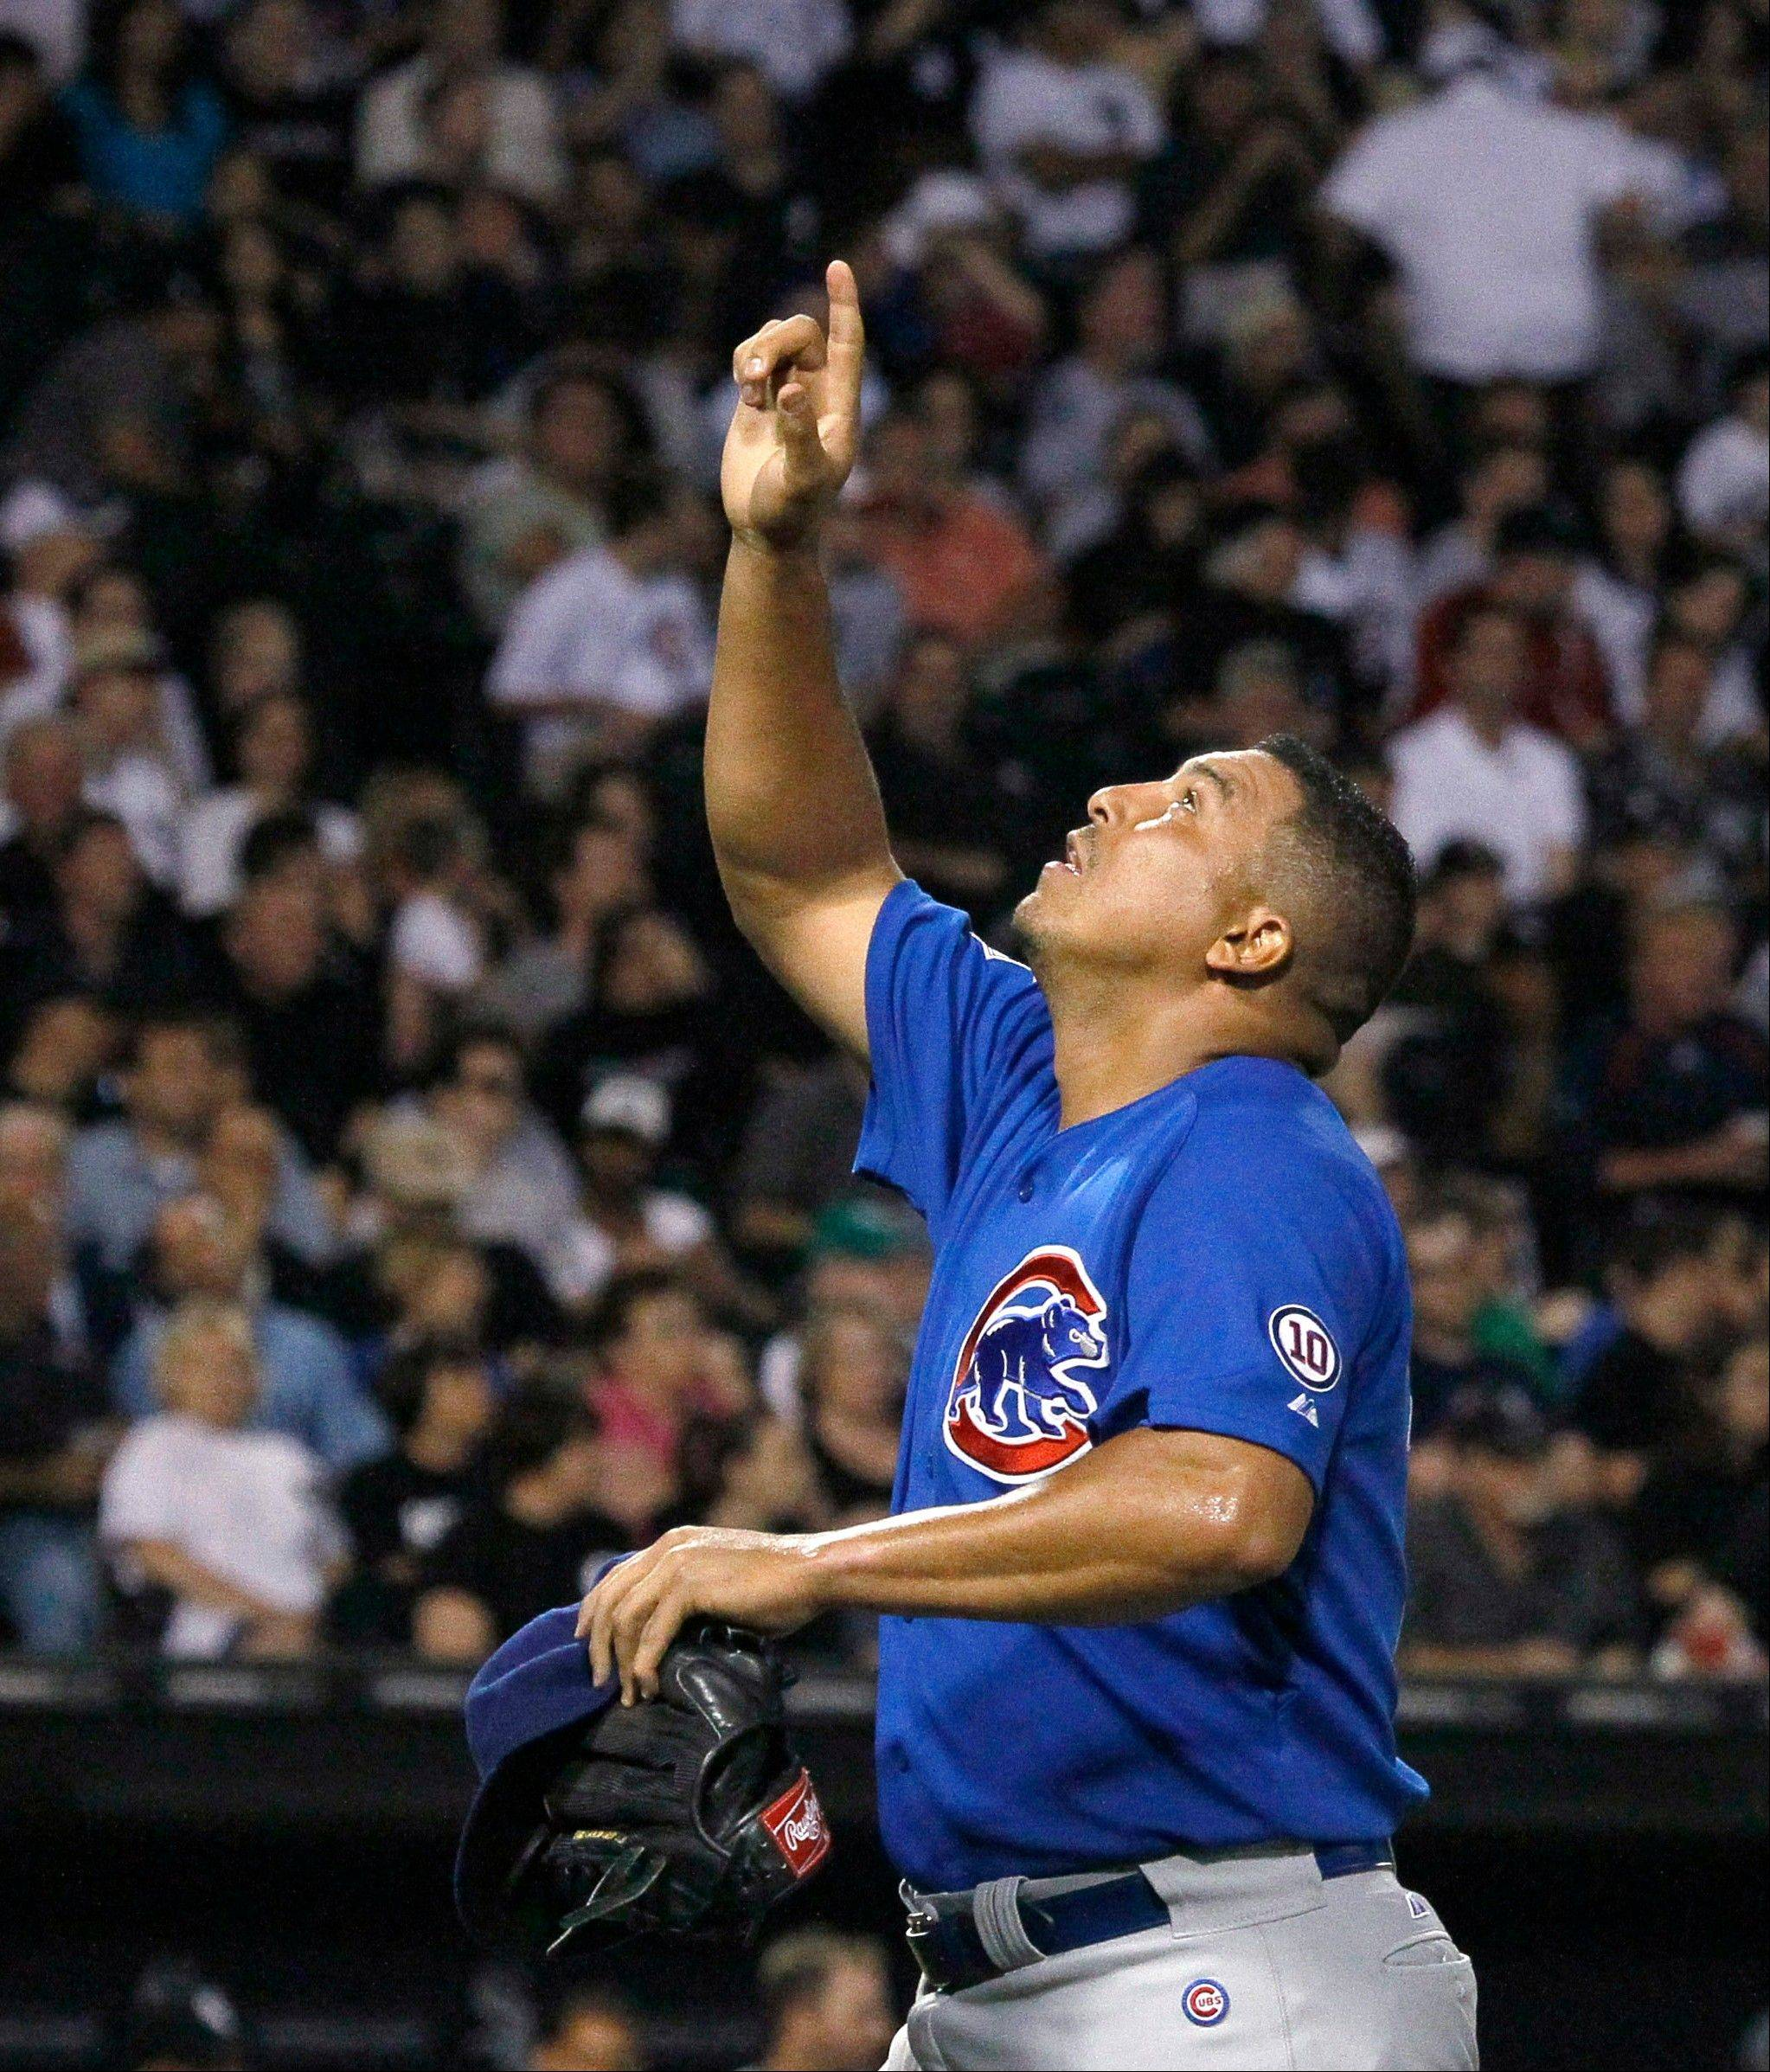 Cubs pitcher Carlos Zambrano points skyward after finishing Monday's seventh inning at U.S. Cellular Field.